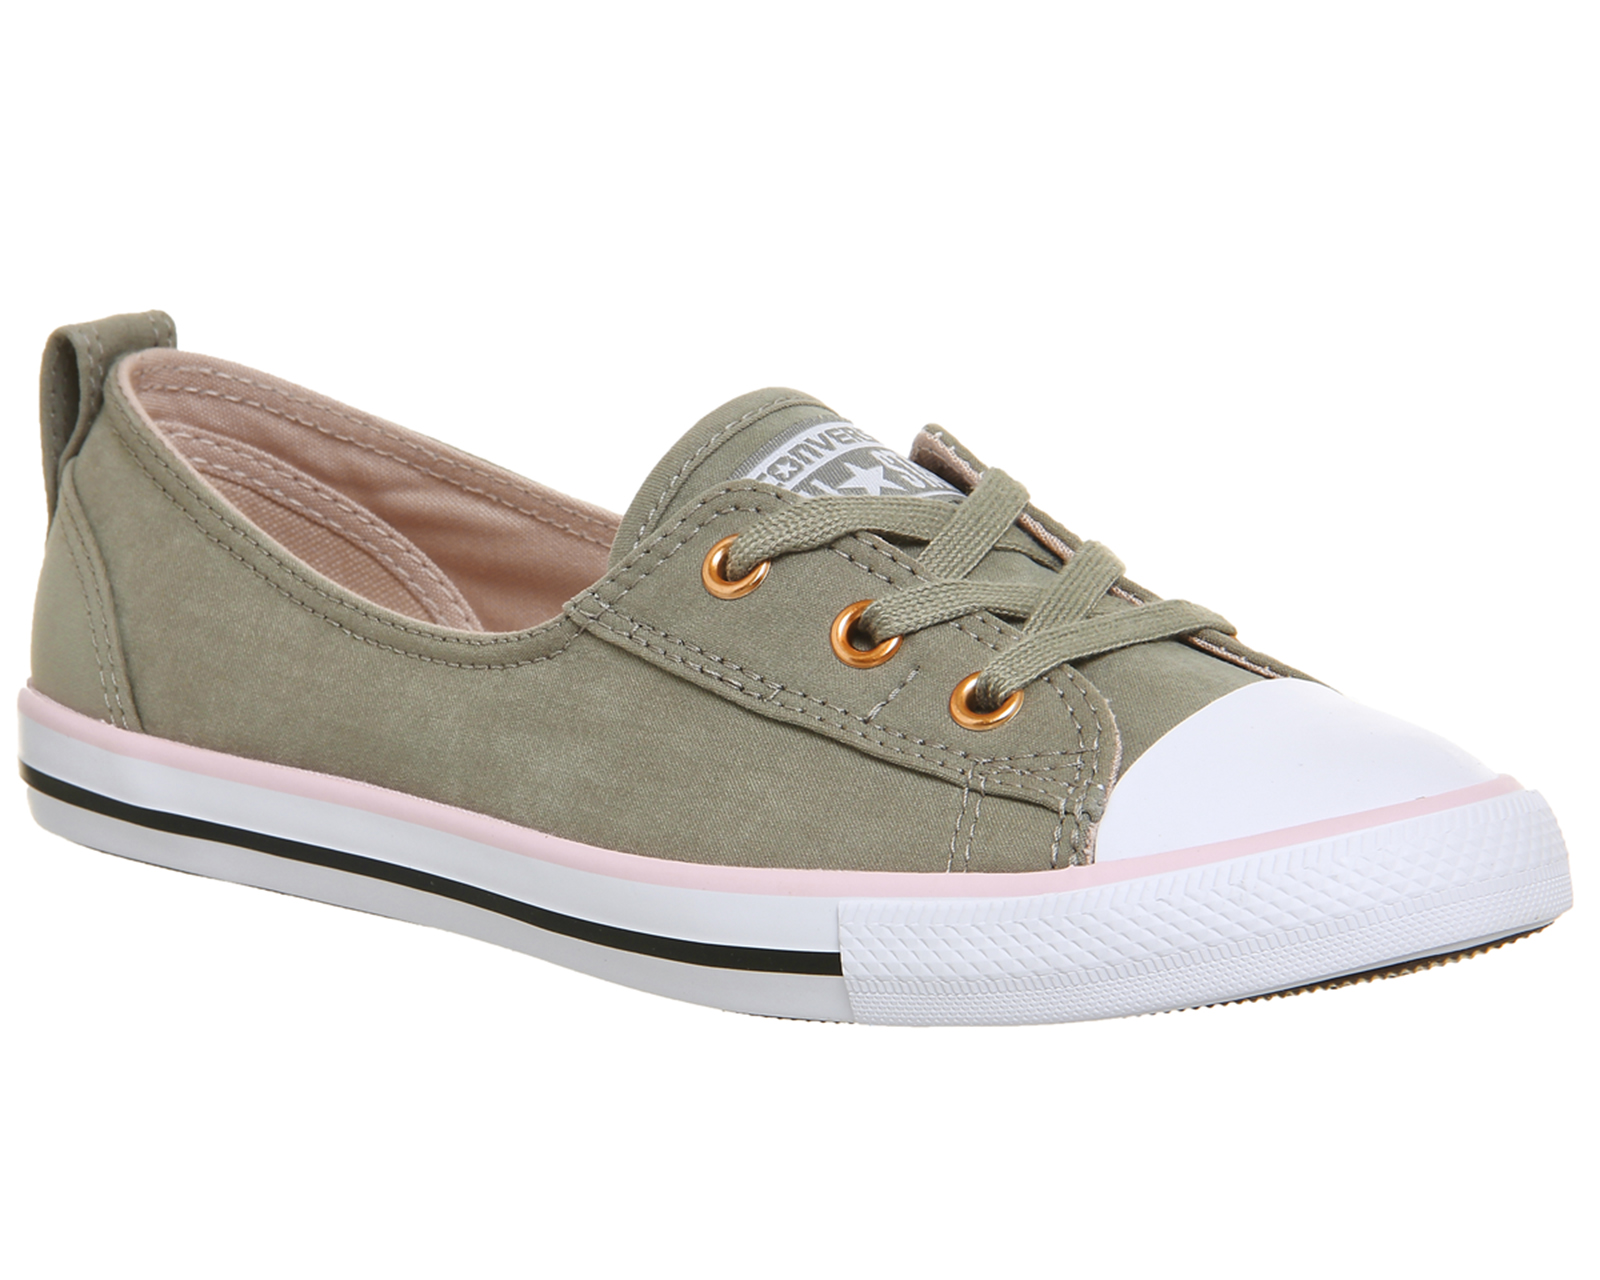 26440c2ac26d Sentinel Womens Converse Ctas Ballet Lace Trainers DARK STUCCO CHERRY  BLOSSOM EXCLUSIVE T